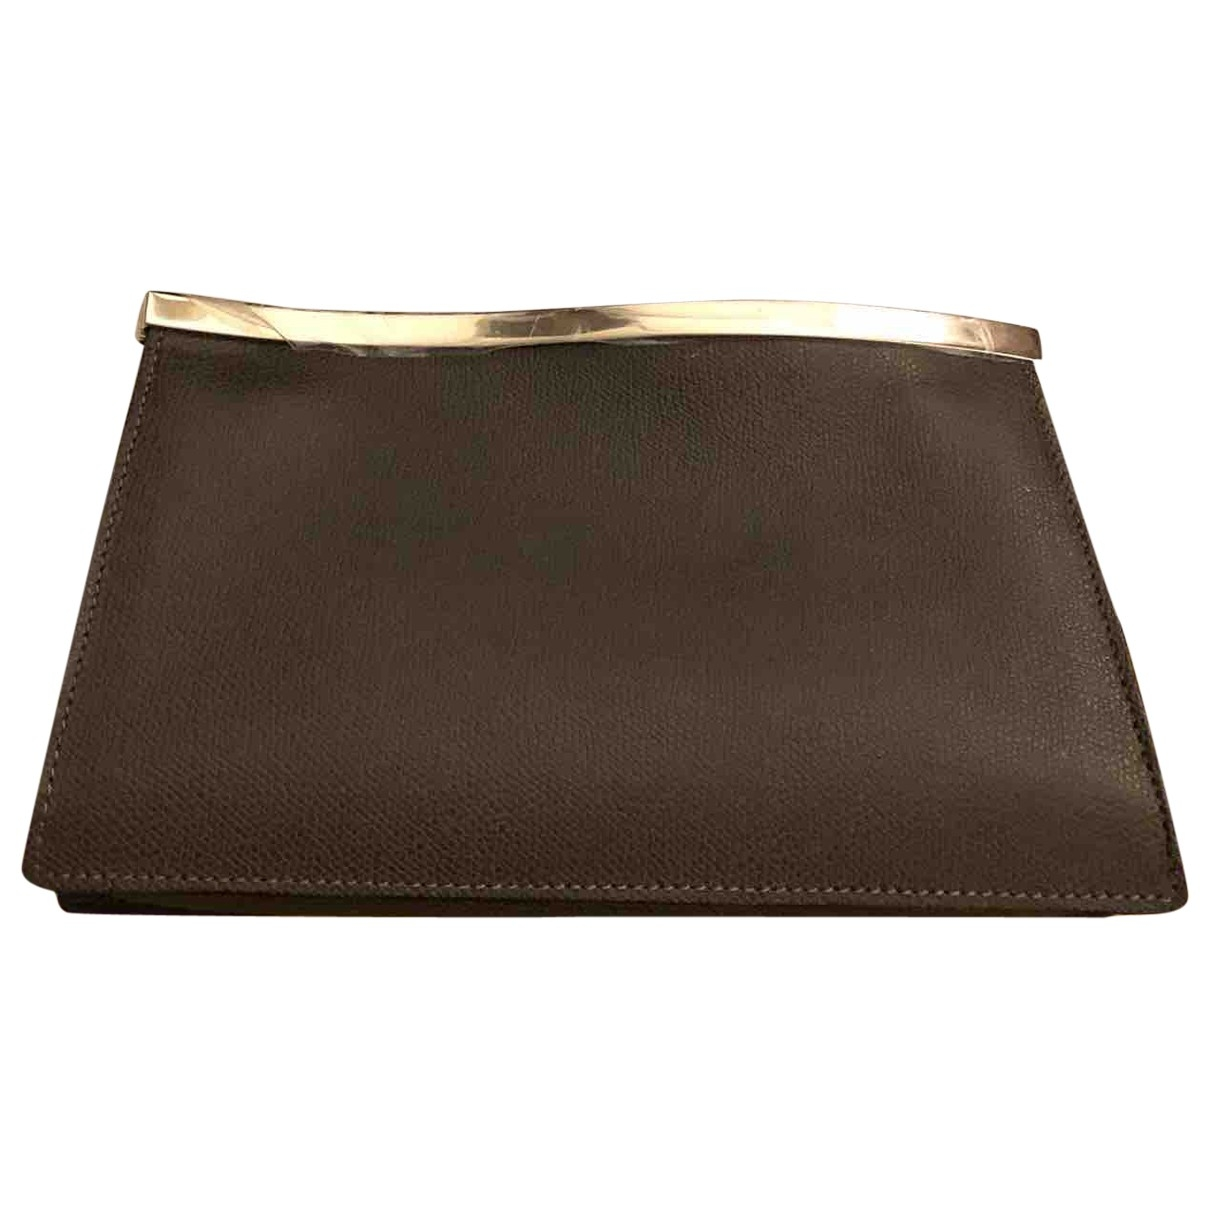 Valextra \N Brown Leather Clutch bag for Women \N